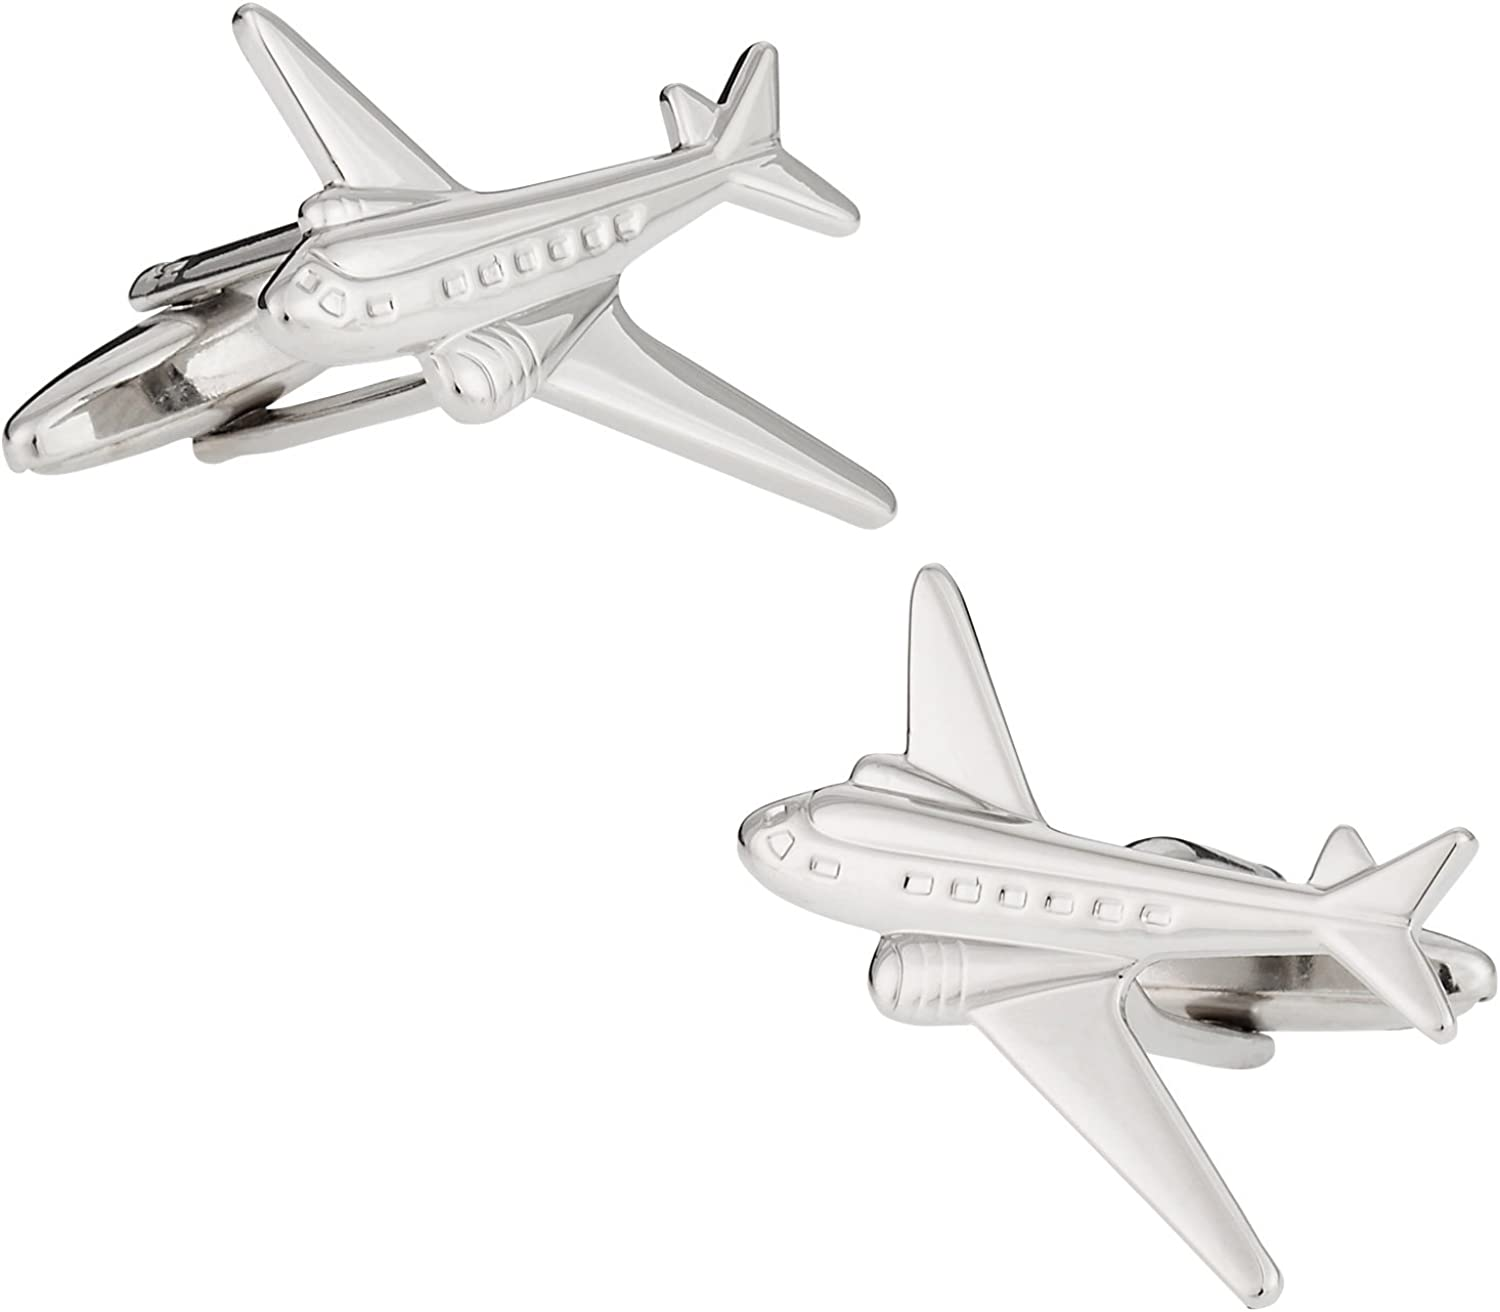 Cuff-Daddy Commercial Long Beach Mall Airline Airplane Presentati with Cufflinks In stock